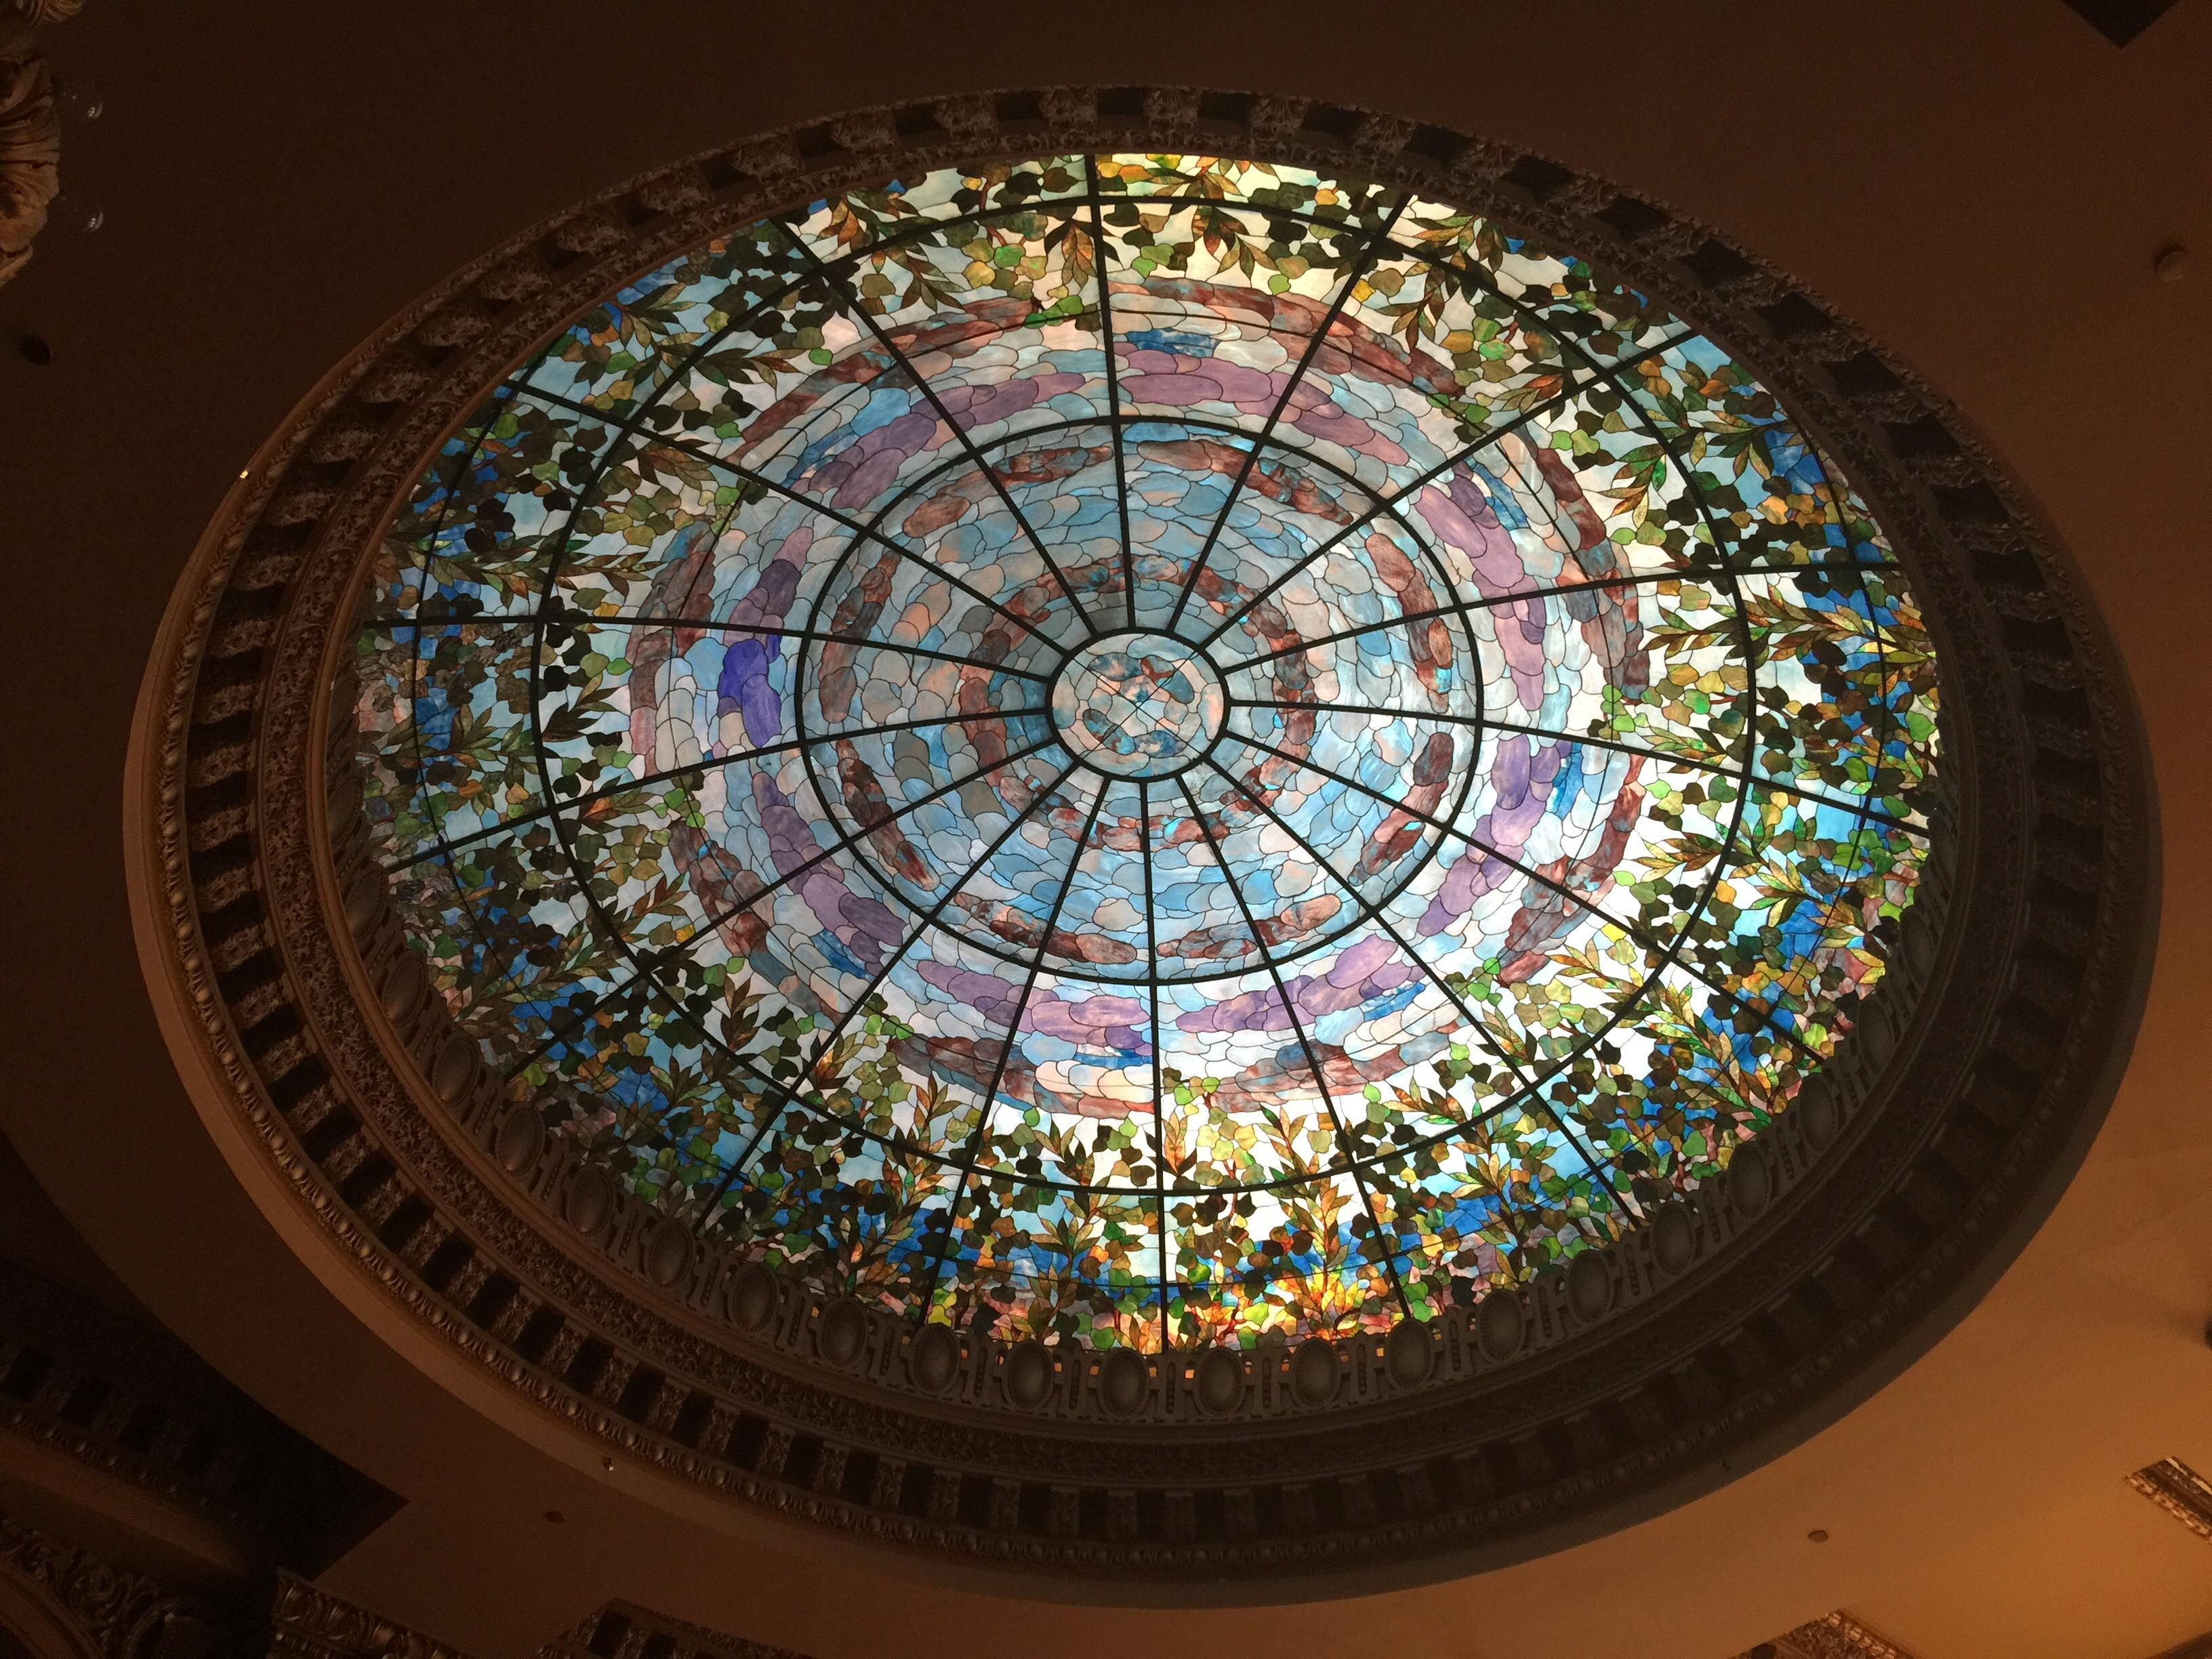 Camino Real Hotel in El Paso. A photo of the glasswork above the restaurant on the first f